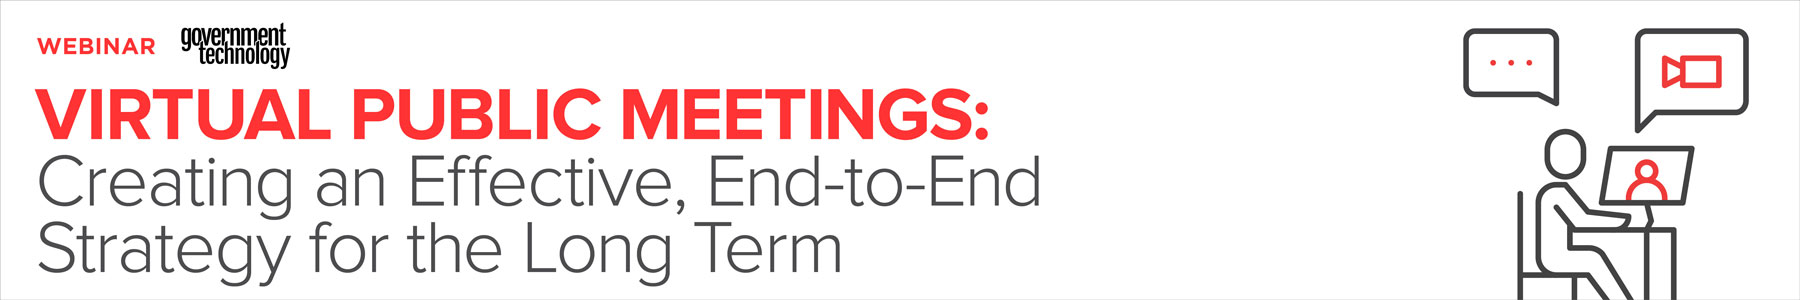 Virtual Public Meetings: Creating an Effective, End-to-End Strategy for the Long Term